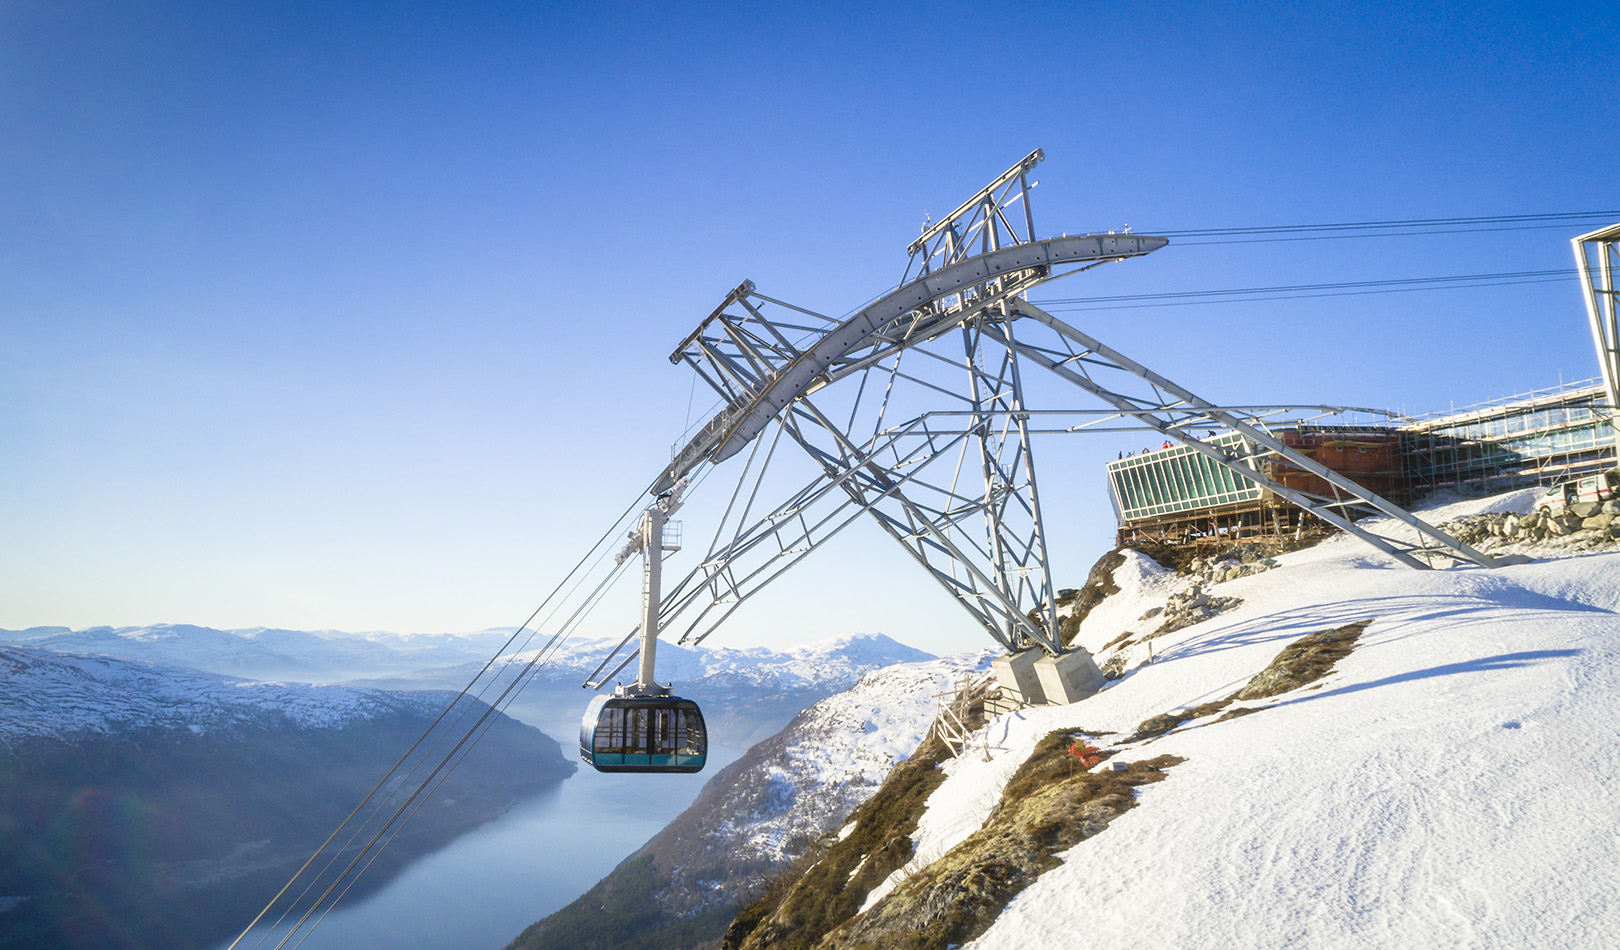 Loen Skylift on the mountaintop with view over mountains and fjords.